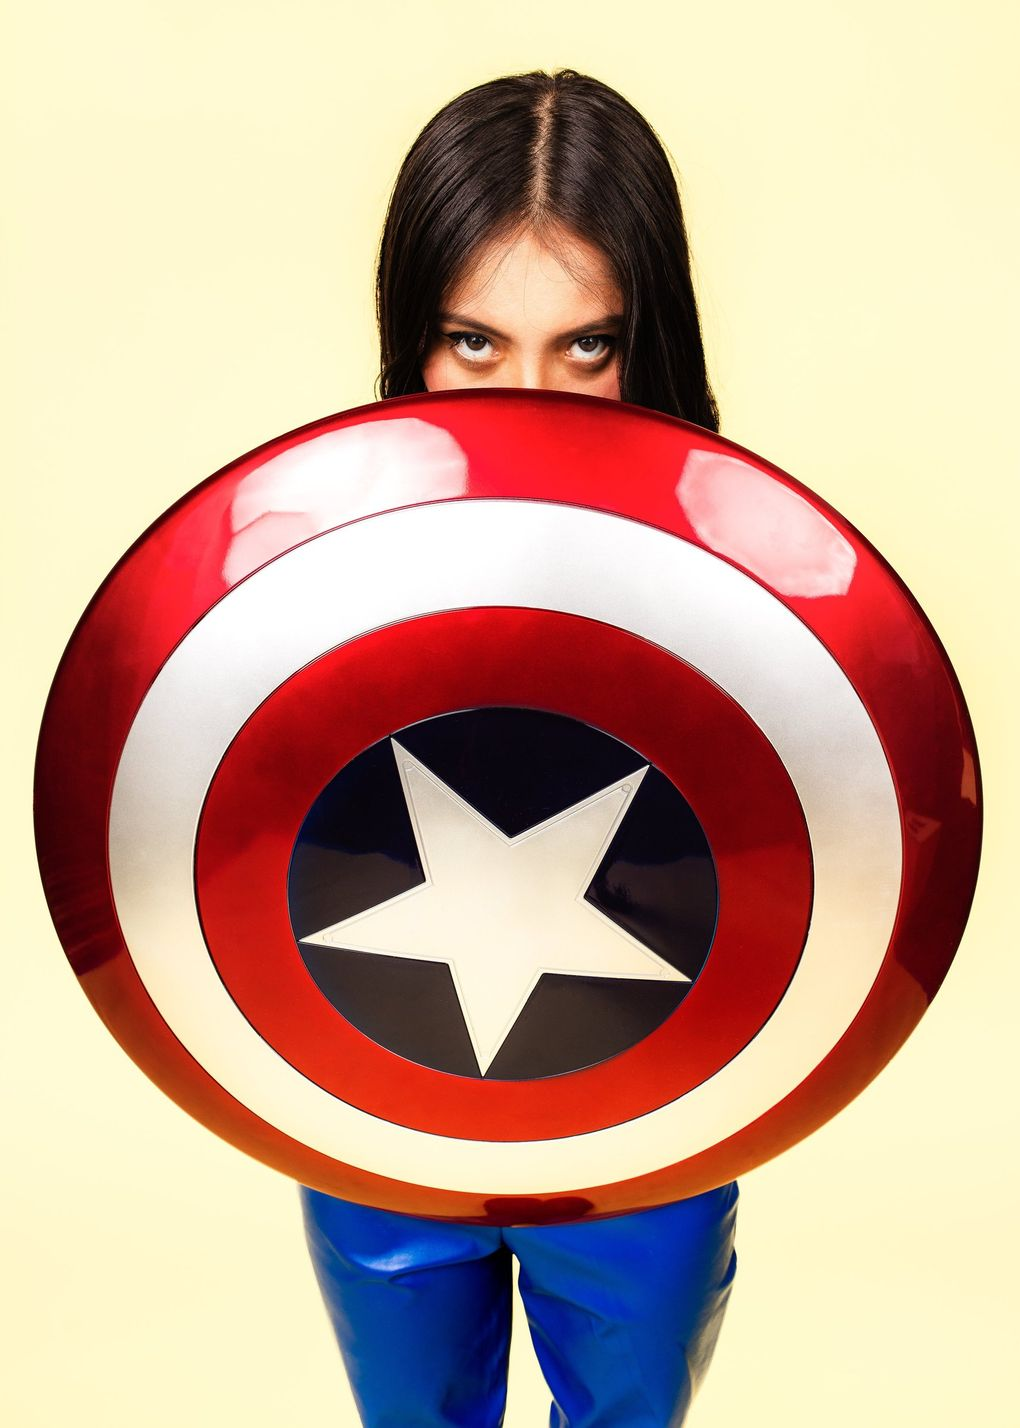 """Giselle Lopez, 18, a marketing student working two jobs and a future filmmaker, says in the exhibit: """"I literally have $2 in my bank account and I'm working two jobs to try and survive with no one. Captain America was my favorite superhero when I was little. It's kind of ironic because he's super patriotic and … yeah, I can't really relate to him right now."""" (Nate Gowdy)"""